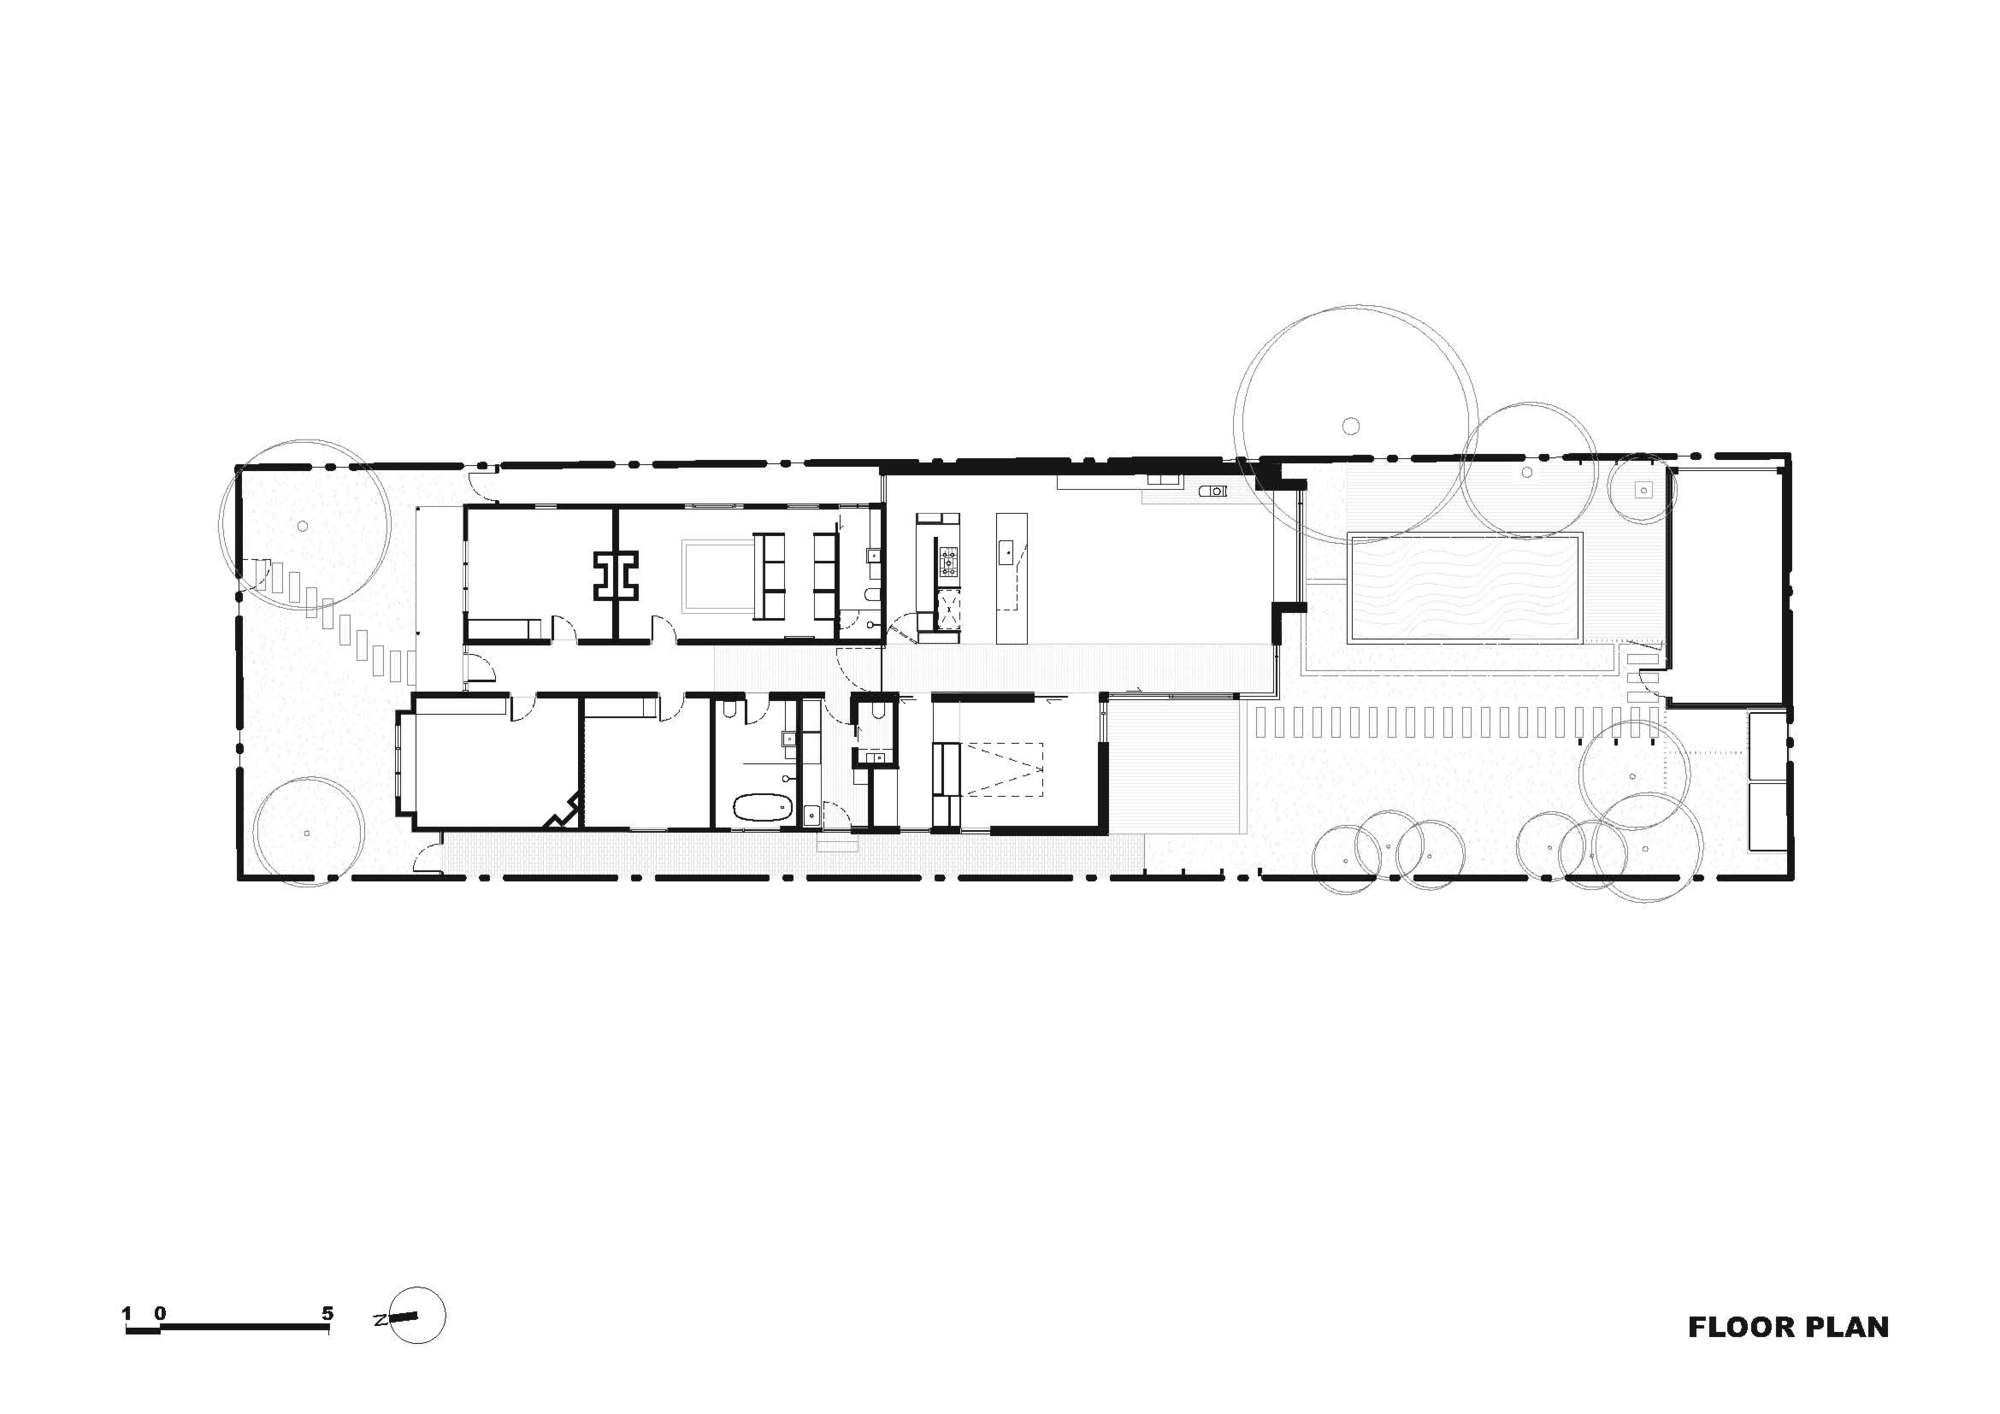 Light Saw House / Zen Architects | ArchDaily on angel house plans, love house plans, harmony house plans, united states house plans, design house plans, art house plans, passion house plans, tibet house plans, spirit house plans, home house plans, light house plans, the not so big house plans, japanese house plans, feng shui house plans, red house plans, living off the grid house plans, spa house plans, nature house plans, star house plans, haiku house plans,